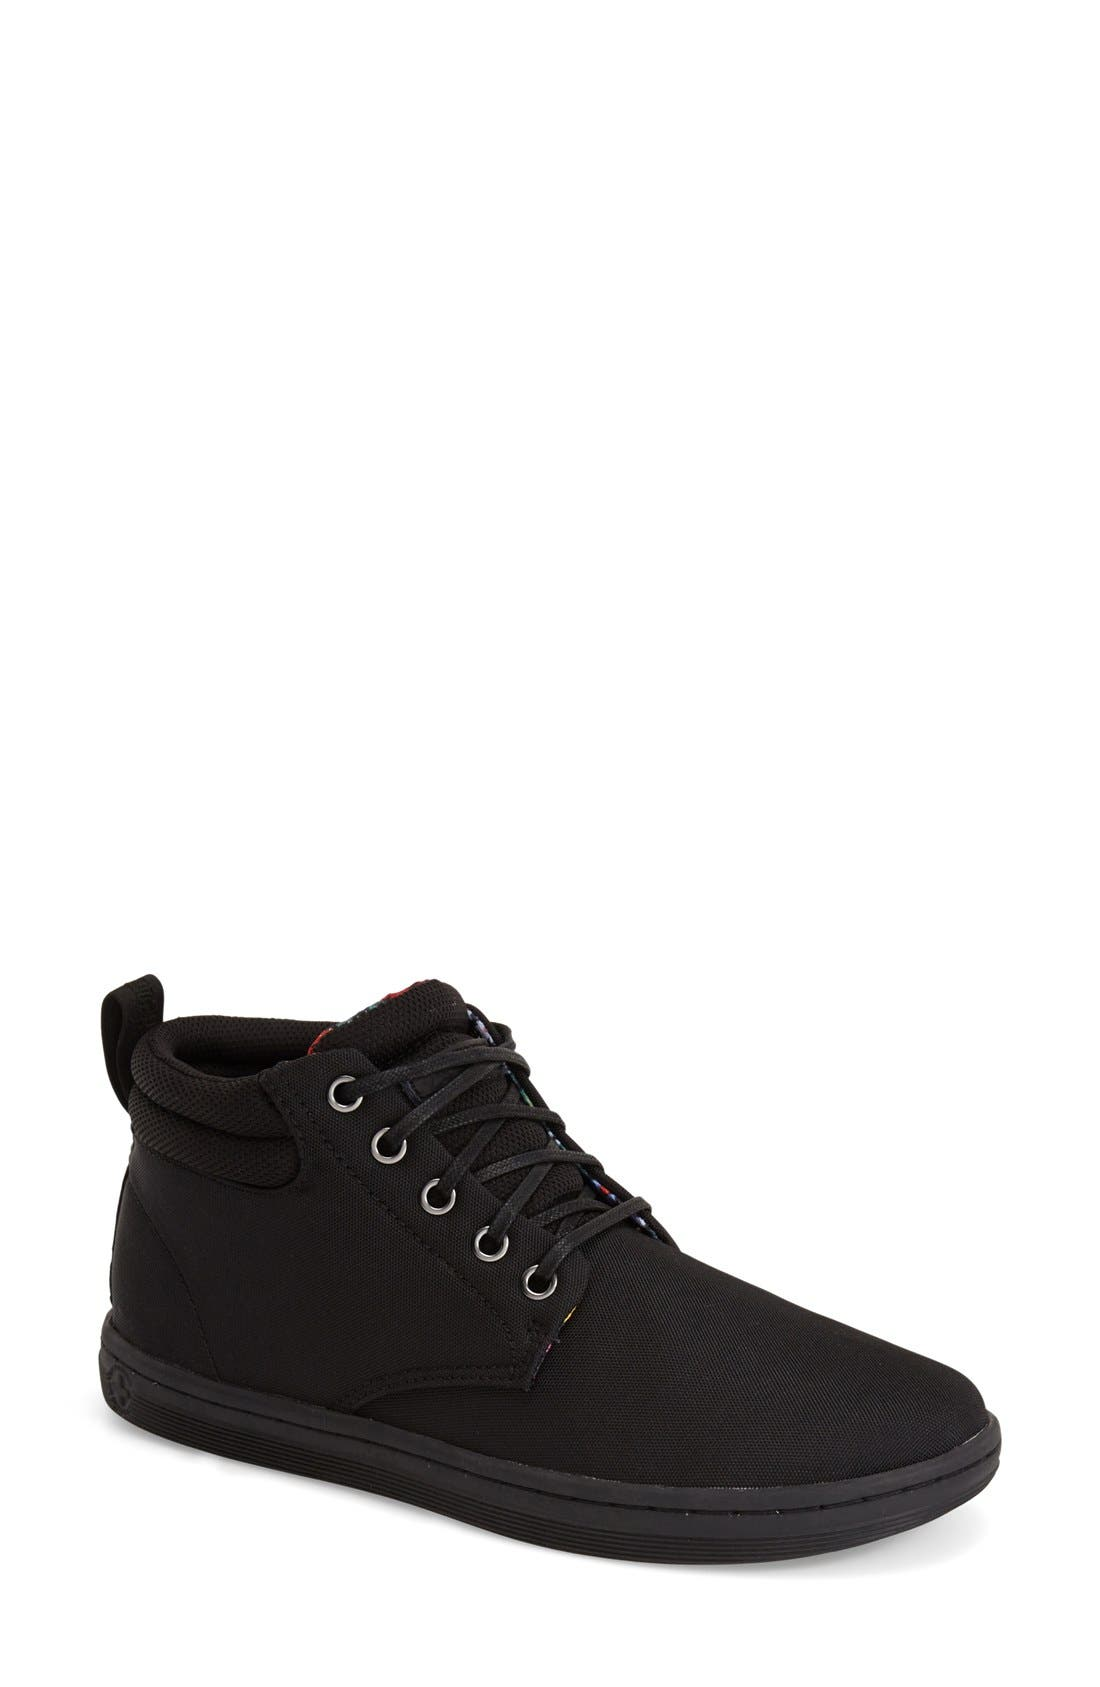 'Belmont' Sneaker, Main, color, 001